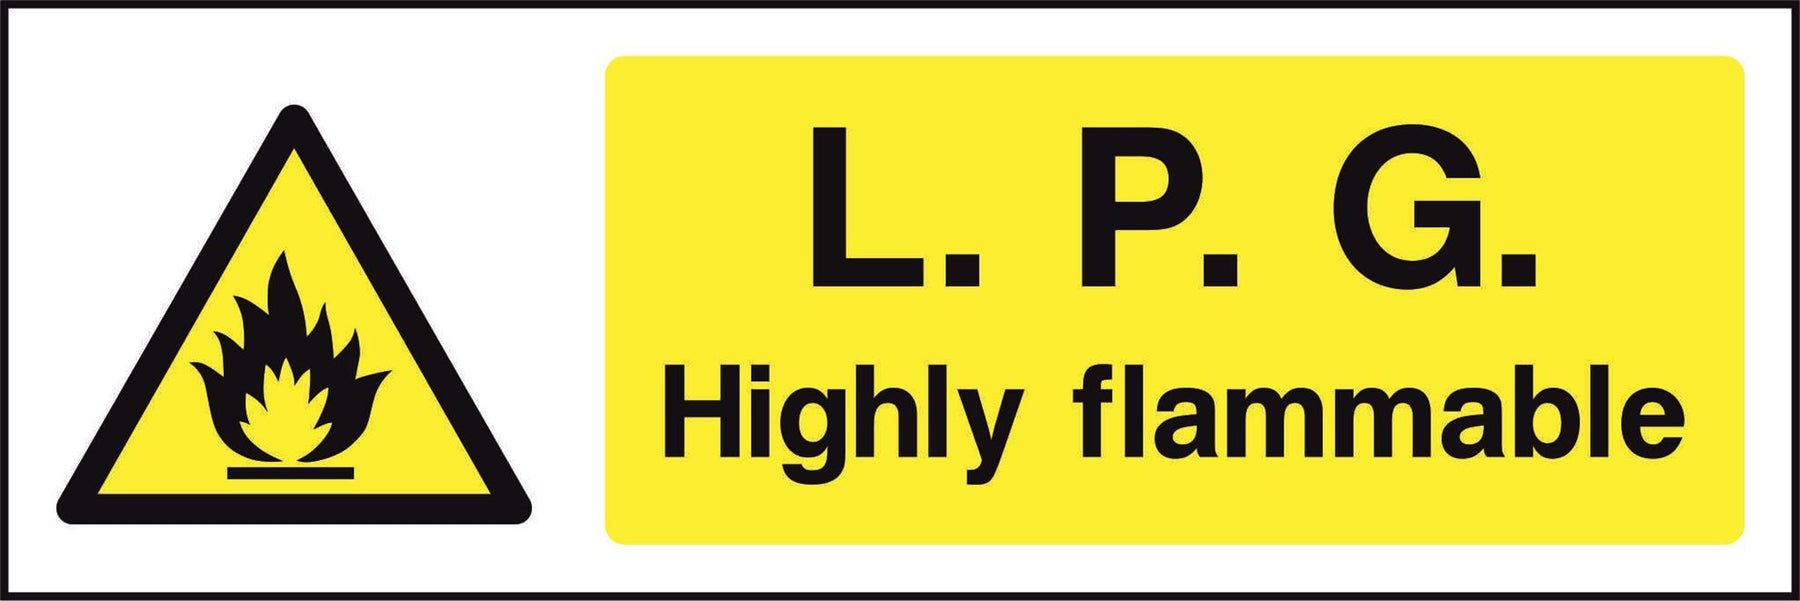 L.P.G. Highly flammable